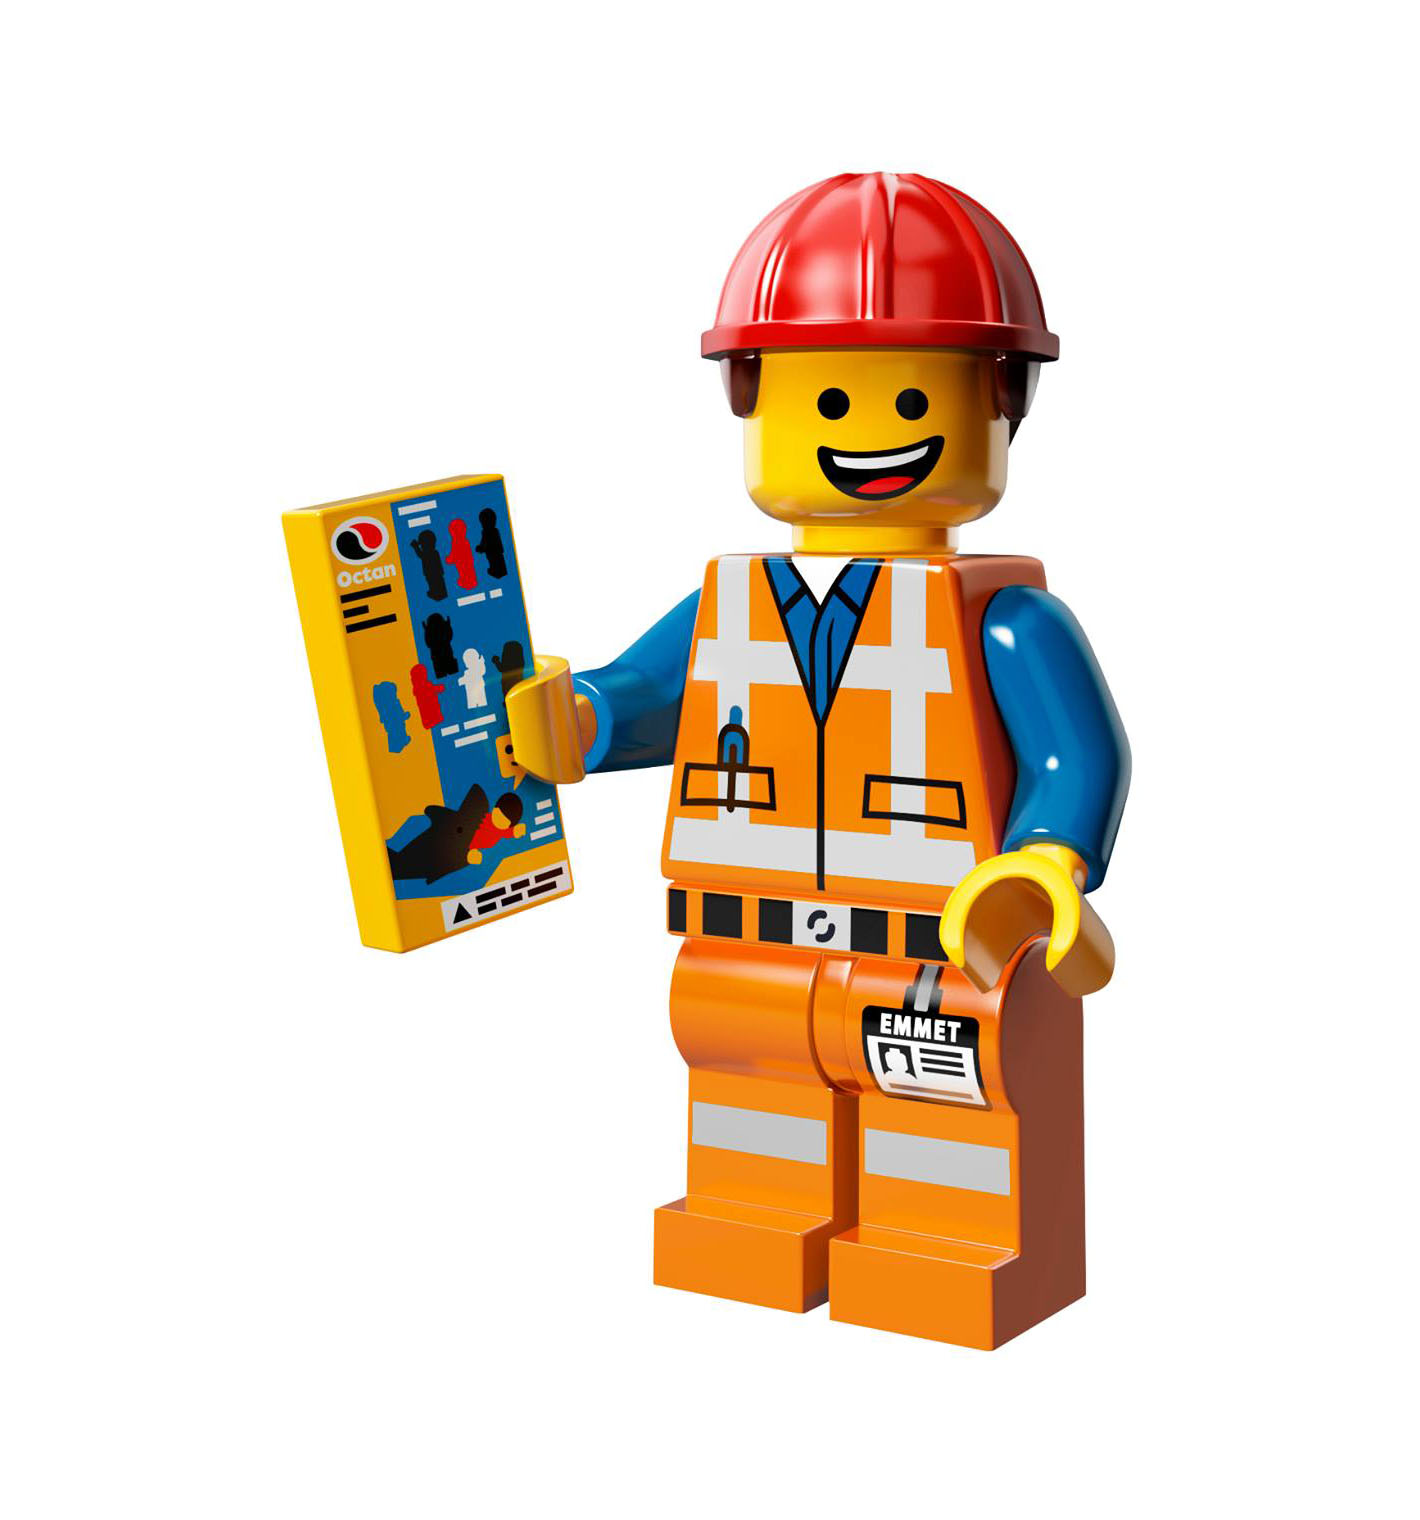 Emmet - Brickipedia, the LEGO Wiki